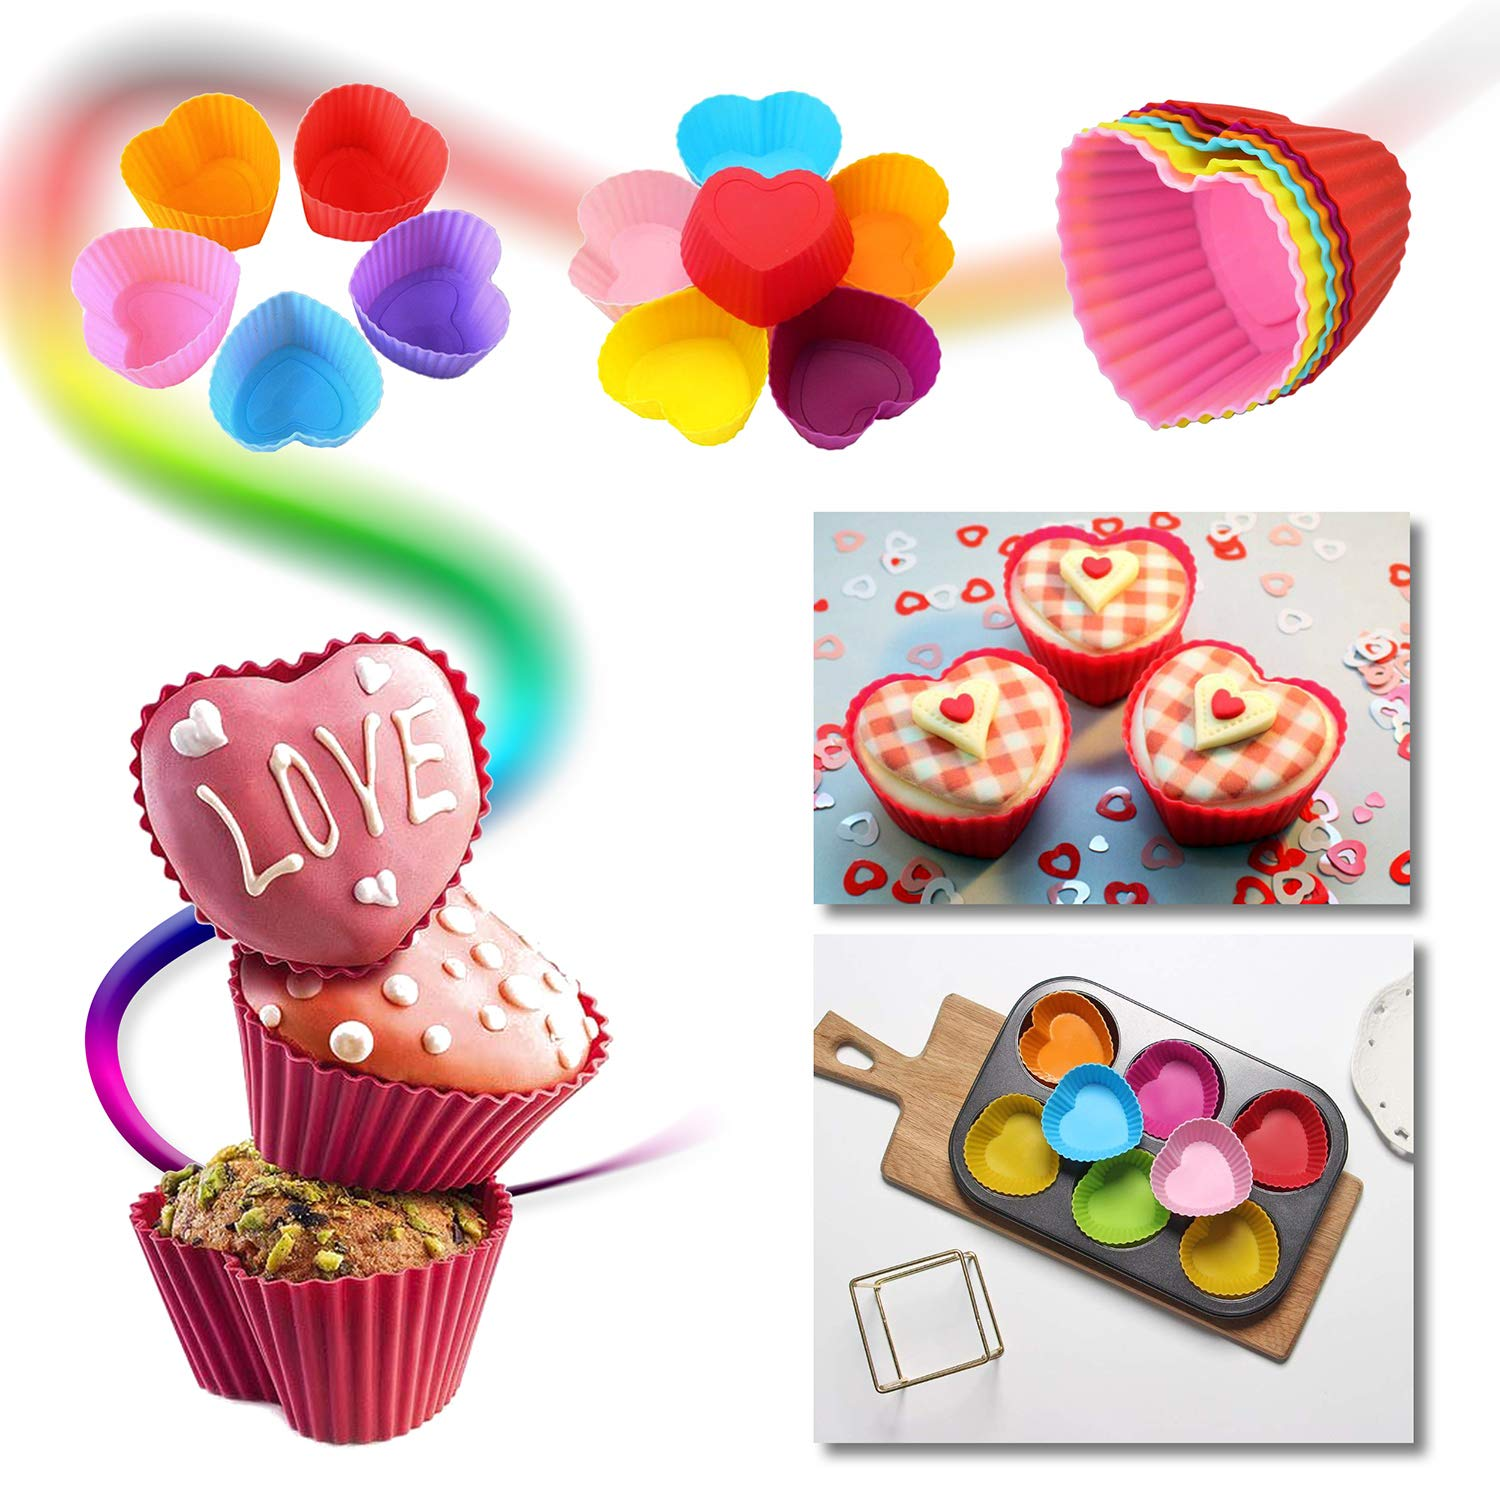 Cupcake Baking Cup Molds Bundle Easy Clean Pastry Liners 48 Nonstick Reusable Silicone Muffin Molds with Icing Pen Cupcake & Cake Decorating Pen Set by Kitchen Krush (Image #6)